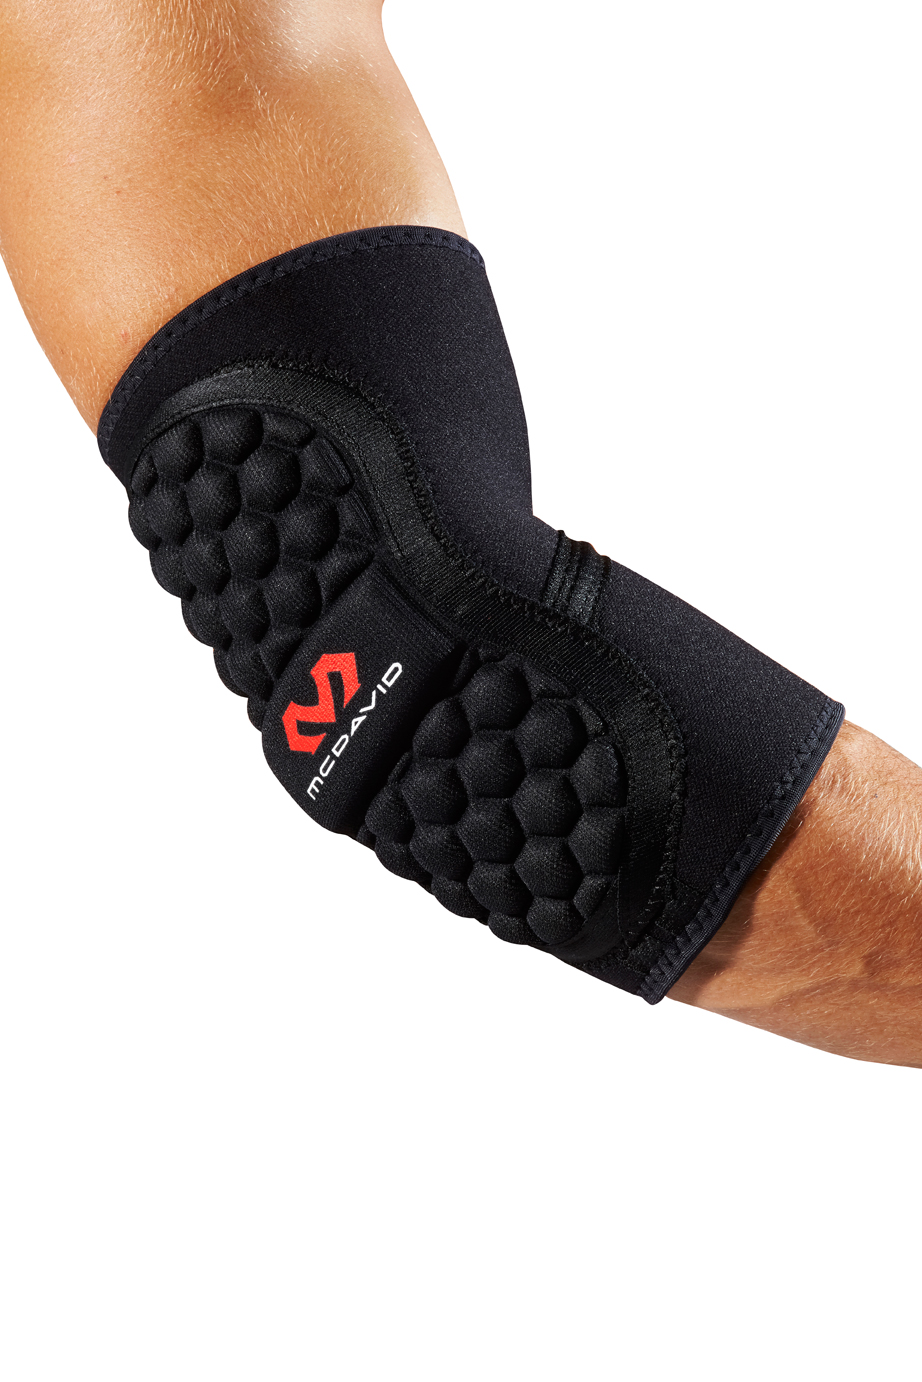 Handball Elbow Pad - McDavid